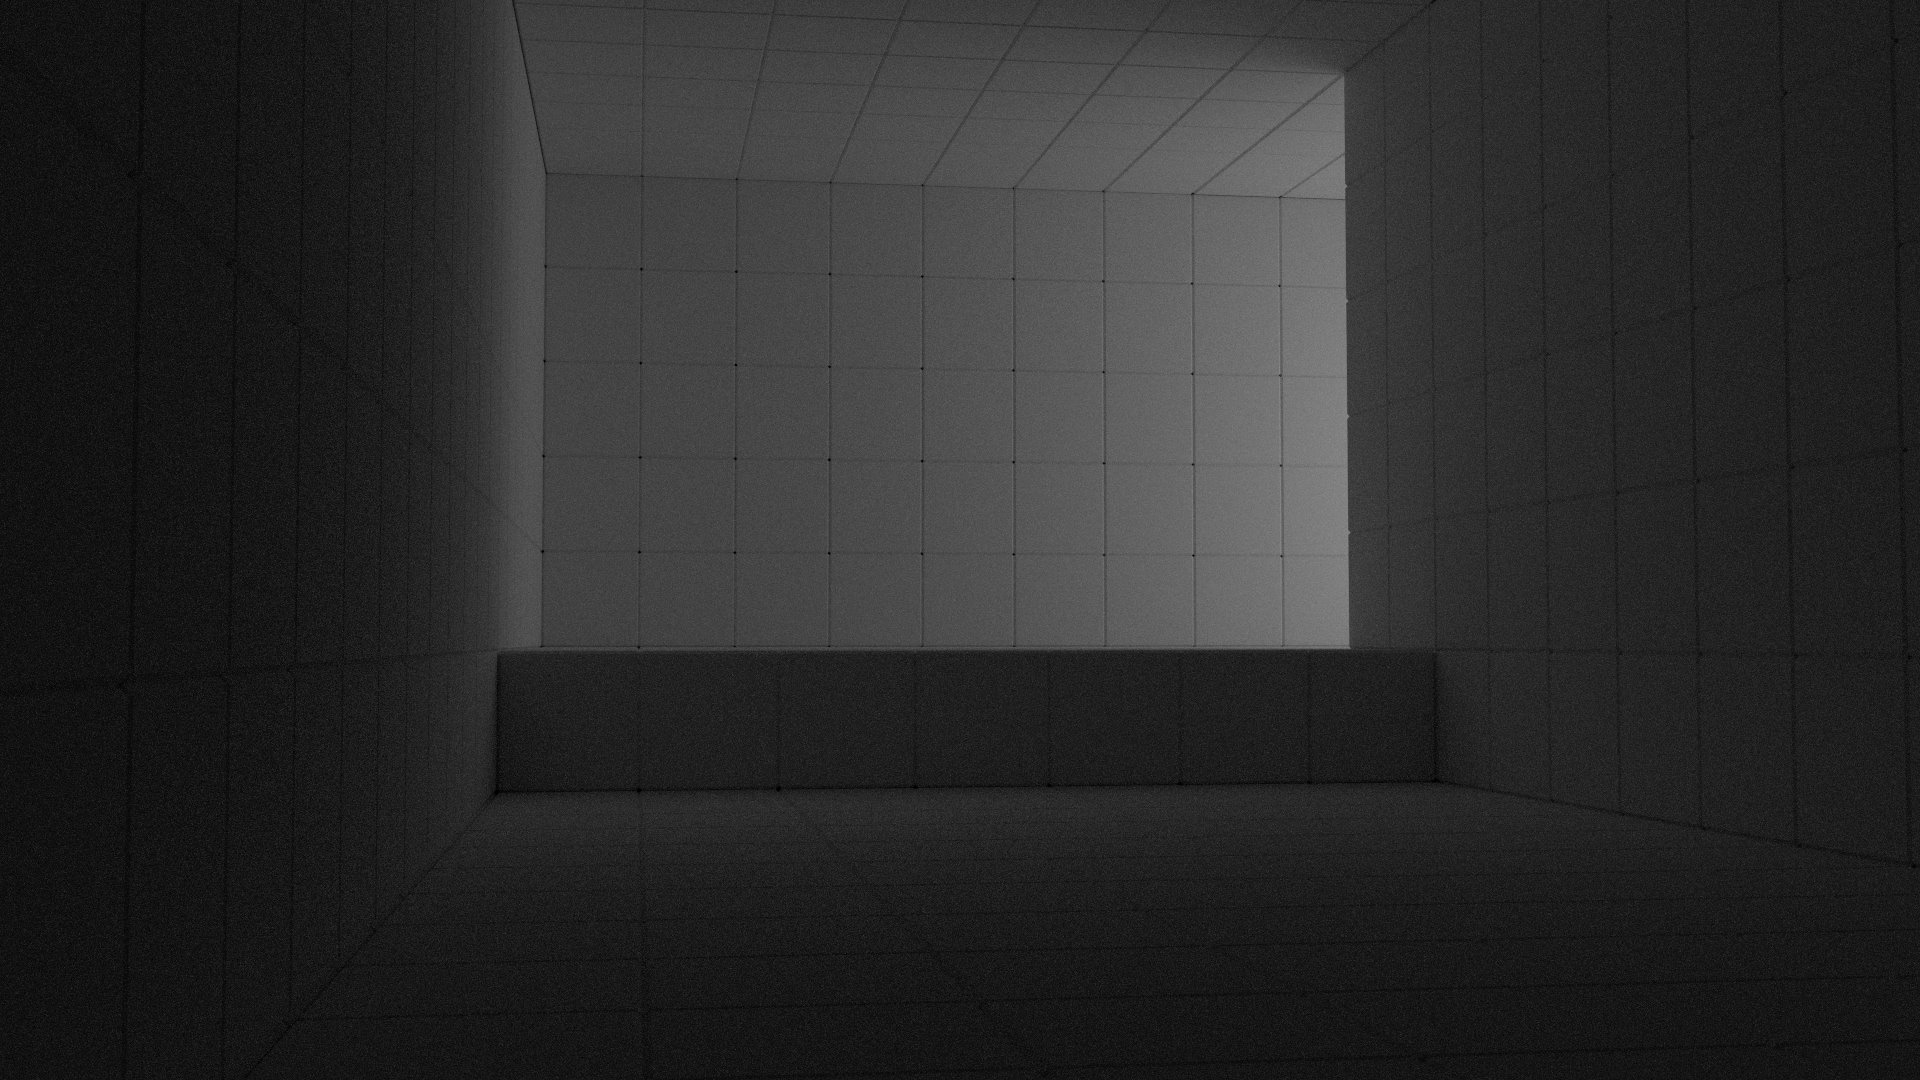 The Room      Qube_room_by_mc_squiggle-d4xoqcw